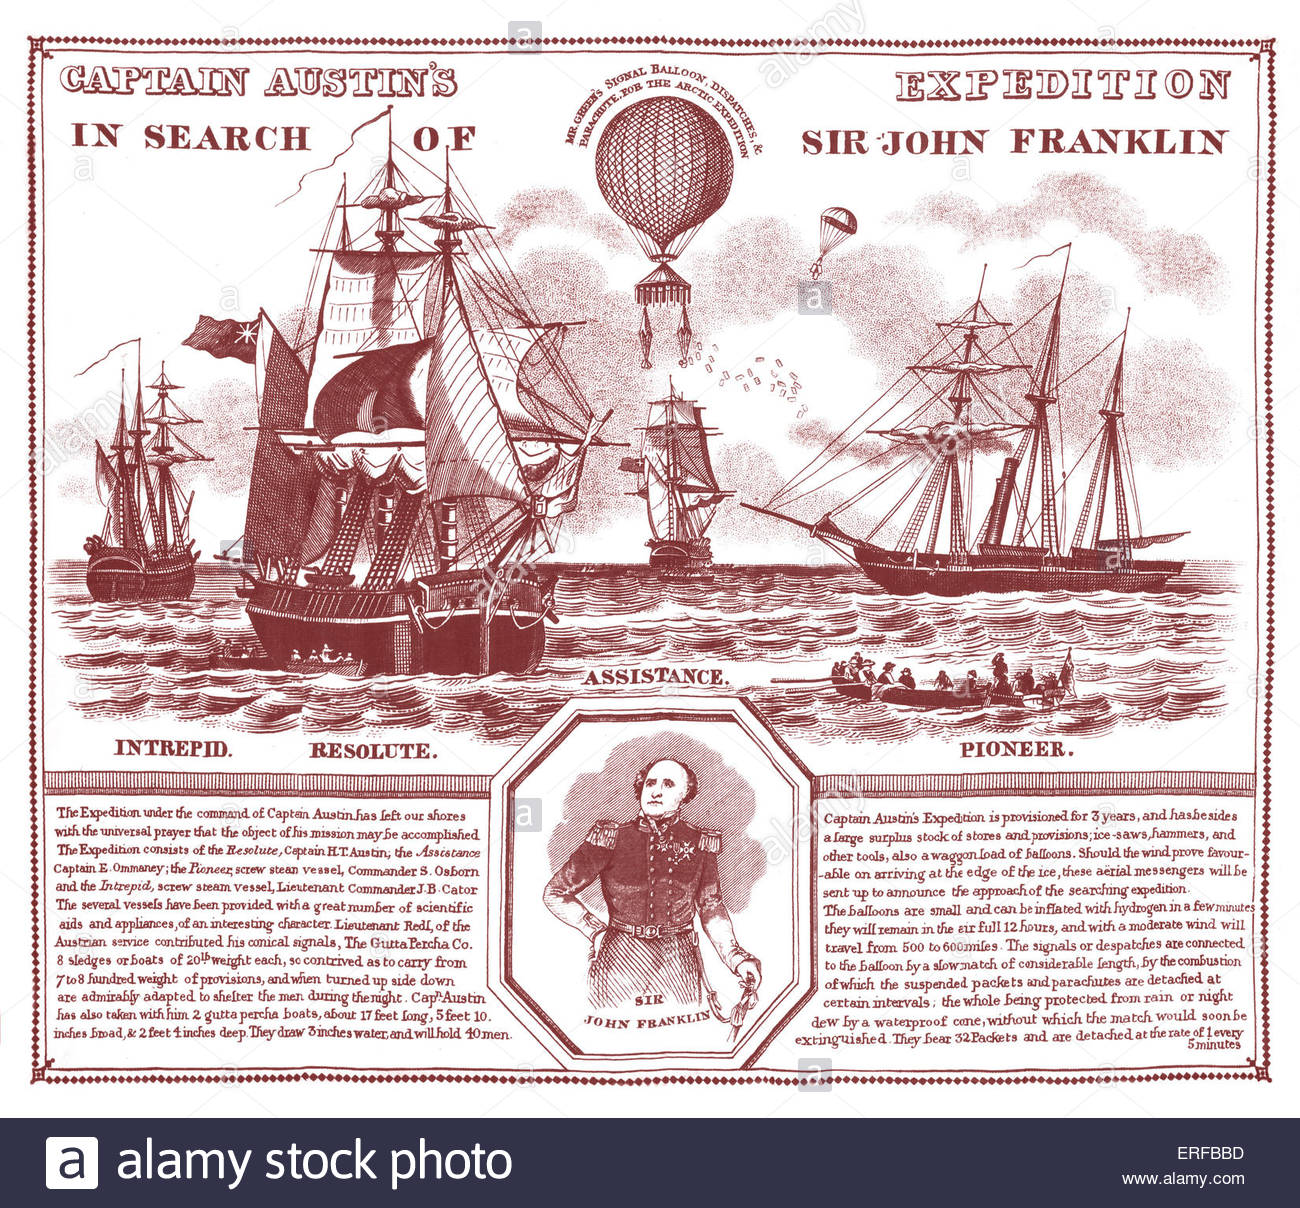 Captain Austin 's expedition in search of Sir John Franklin. Shows Horatio Austin's fleet in 1850, accompanied - Stock Image